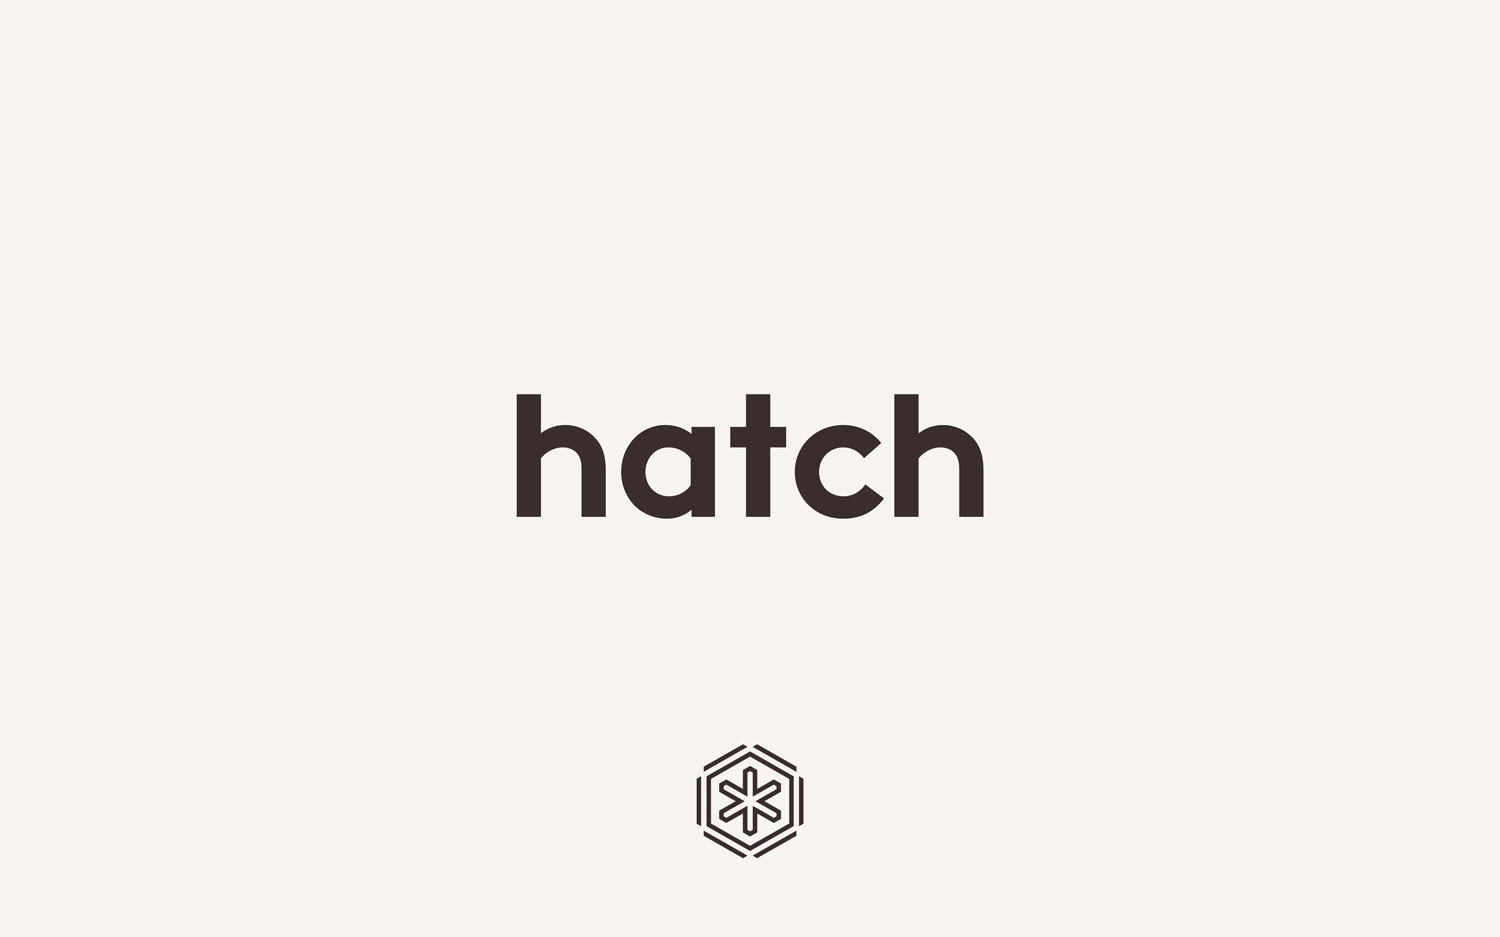 Brand identity, illustration, packaging and website by graphic design studio Tung for Toronto coffee roaster Hatch